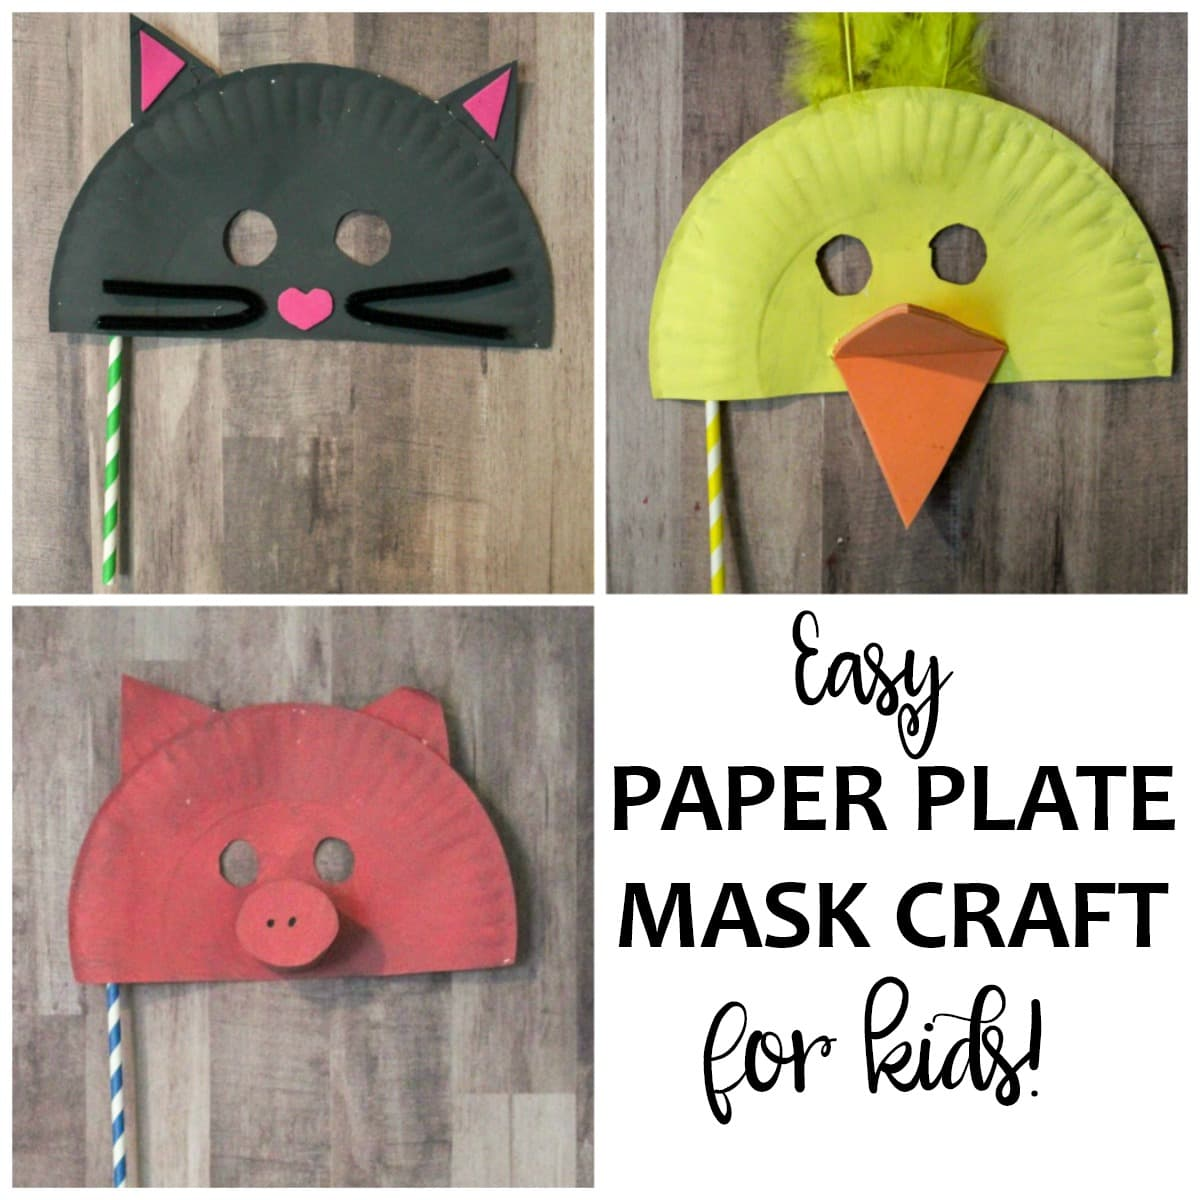 sc 1 st  Life is Sweeter By Design & Paper Plate Mask Craft for Kids - Life is Sweeter By Design